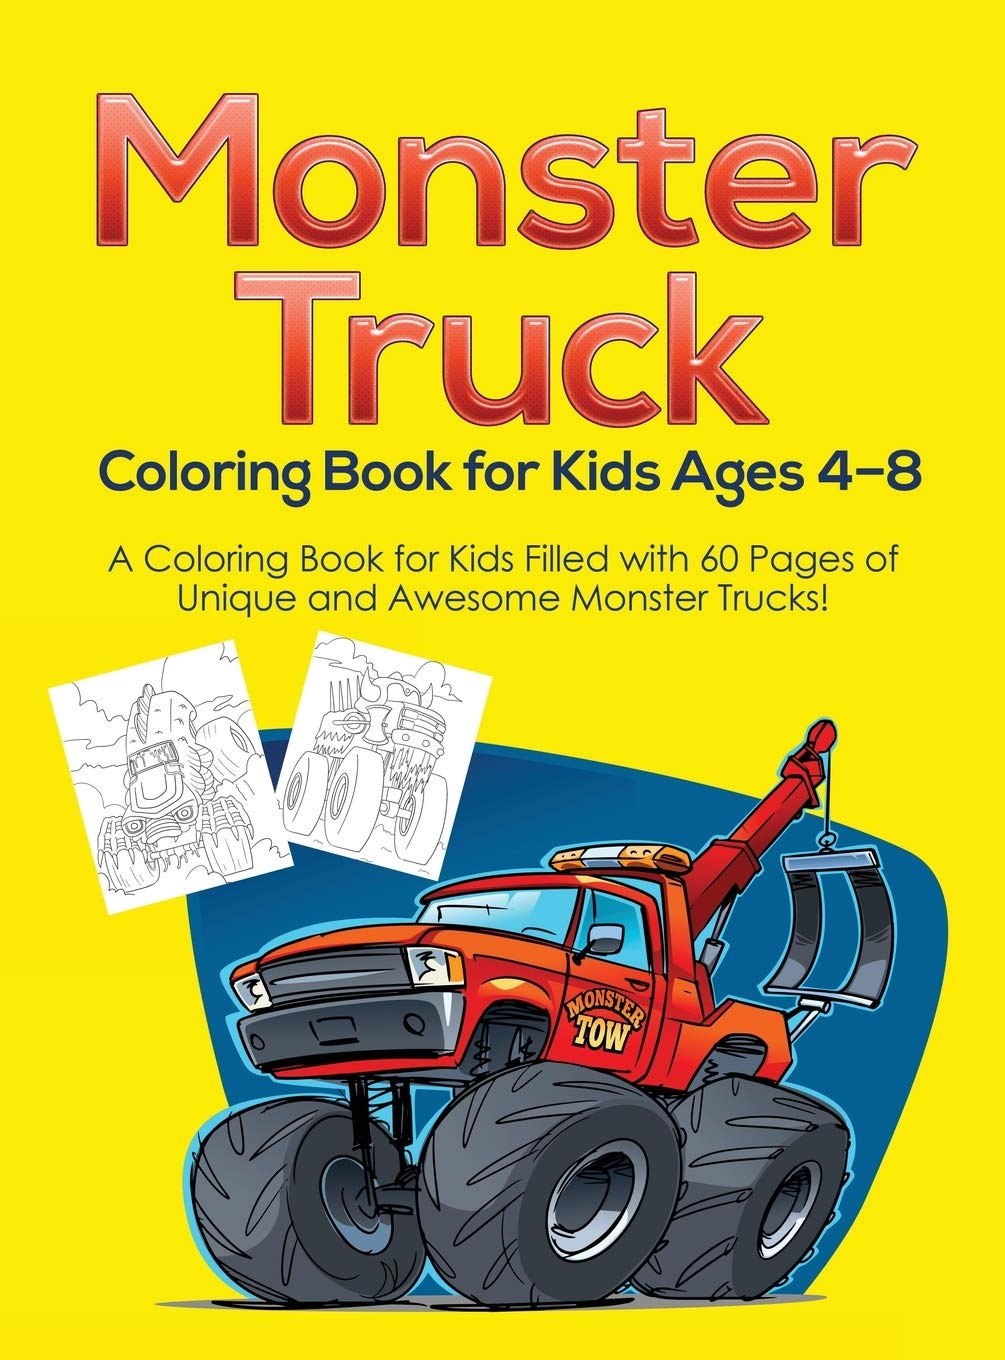 Monster Truck Coloring Book for Kids Ages 10-10: A Coloring Book for